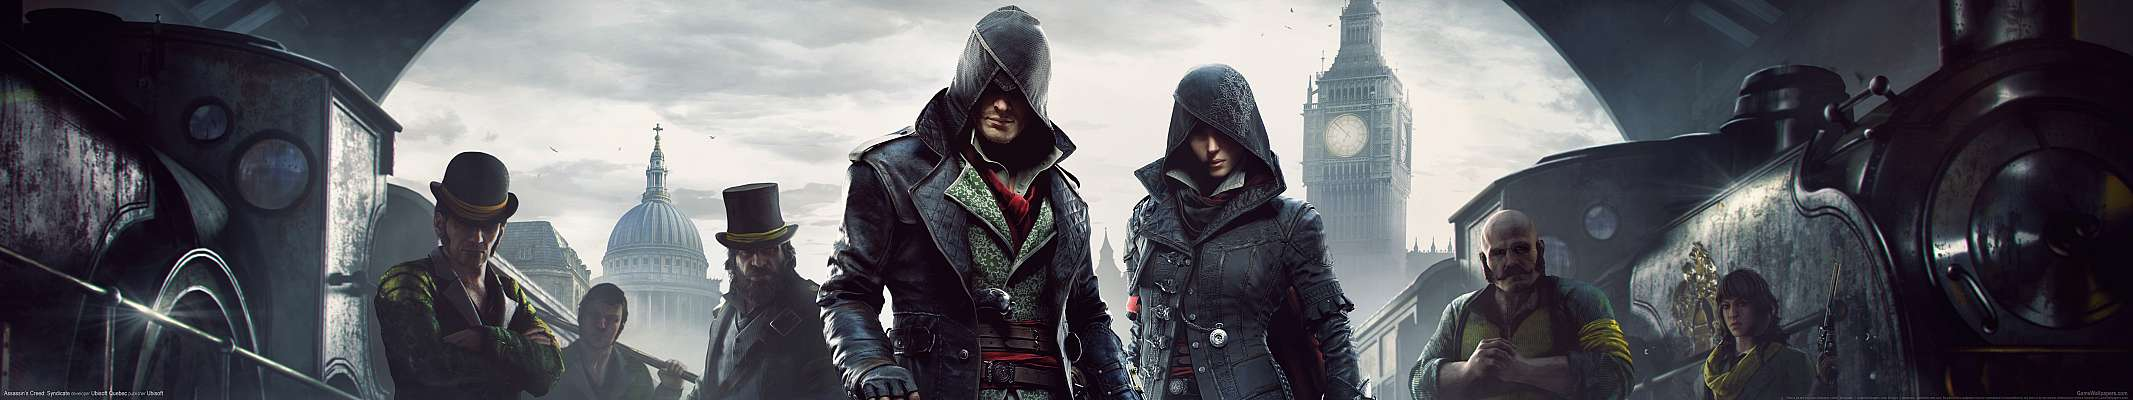 Assassin's Creed: Syndicate triple screen fond d'écran